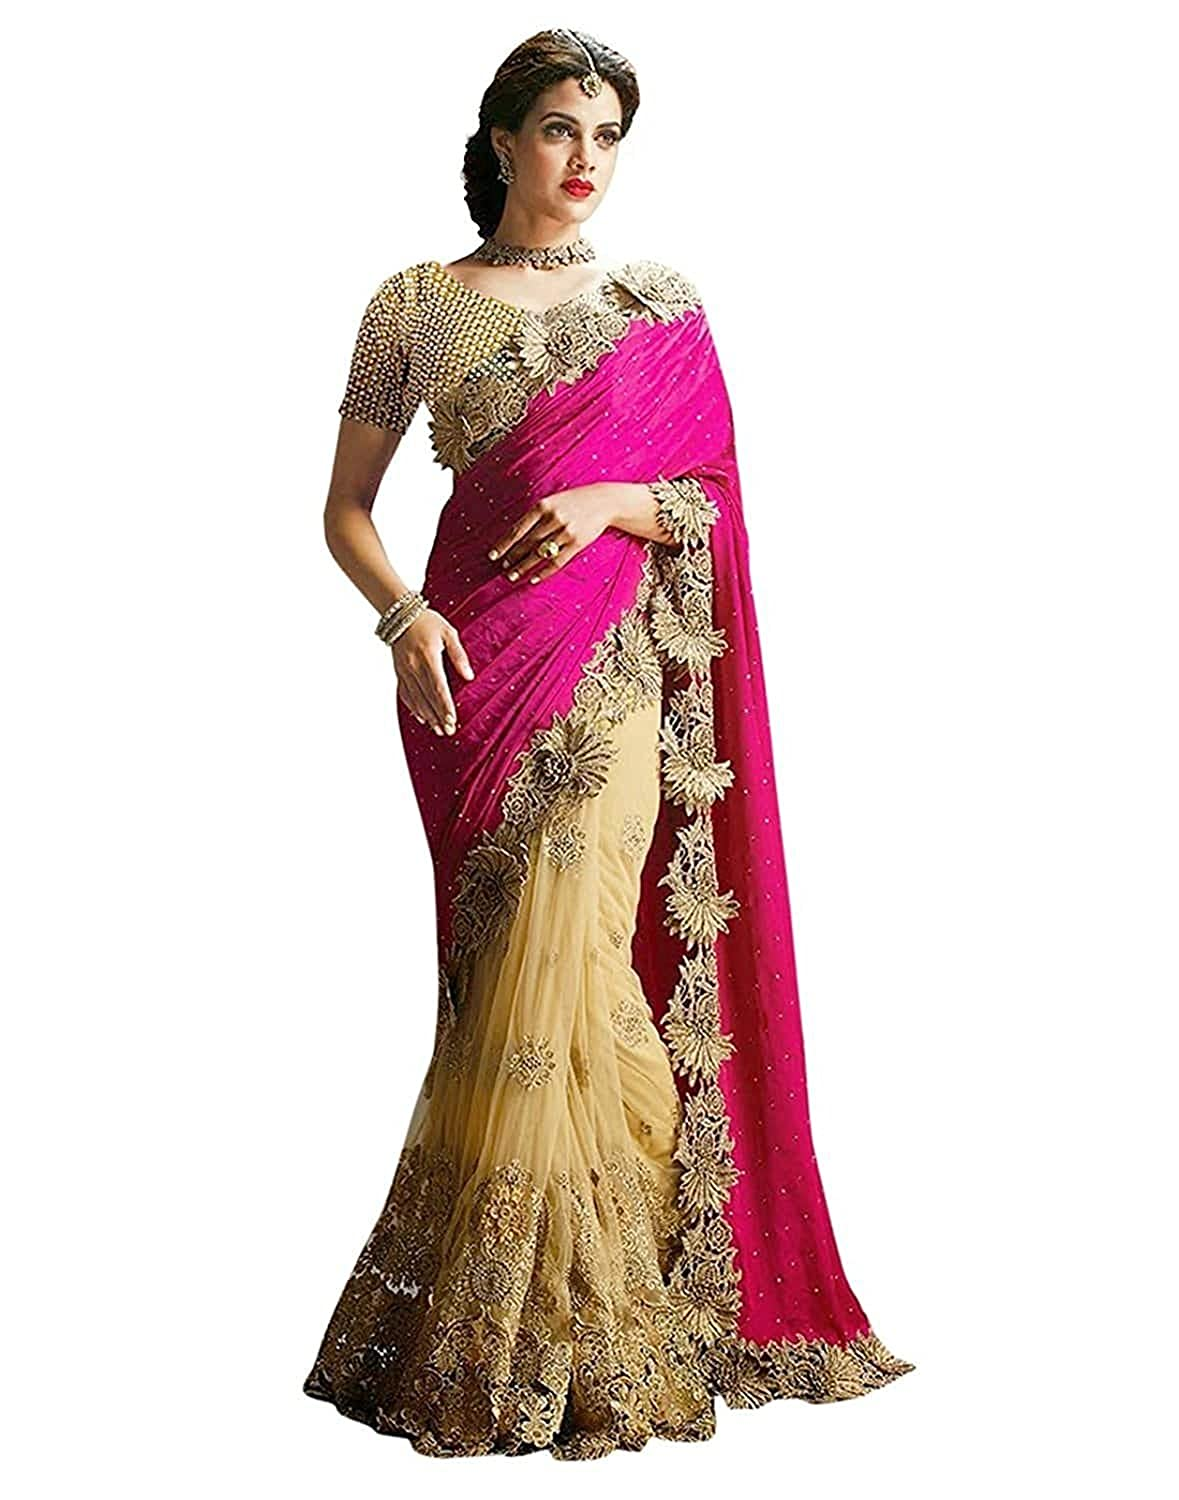 Sarees (Women's Clothing Saree For Women Latest Design Wear New Collection in Latest With Designer Blouse Free Size Beautiful Saree For Women Party Wear Offer Designer Sarees With Blouse Piece)